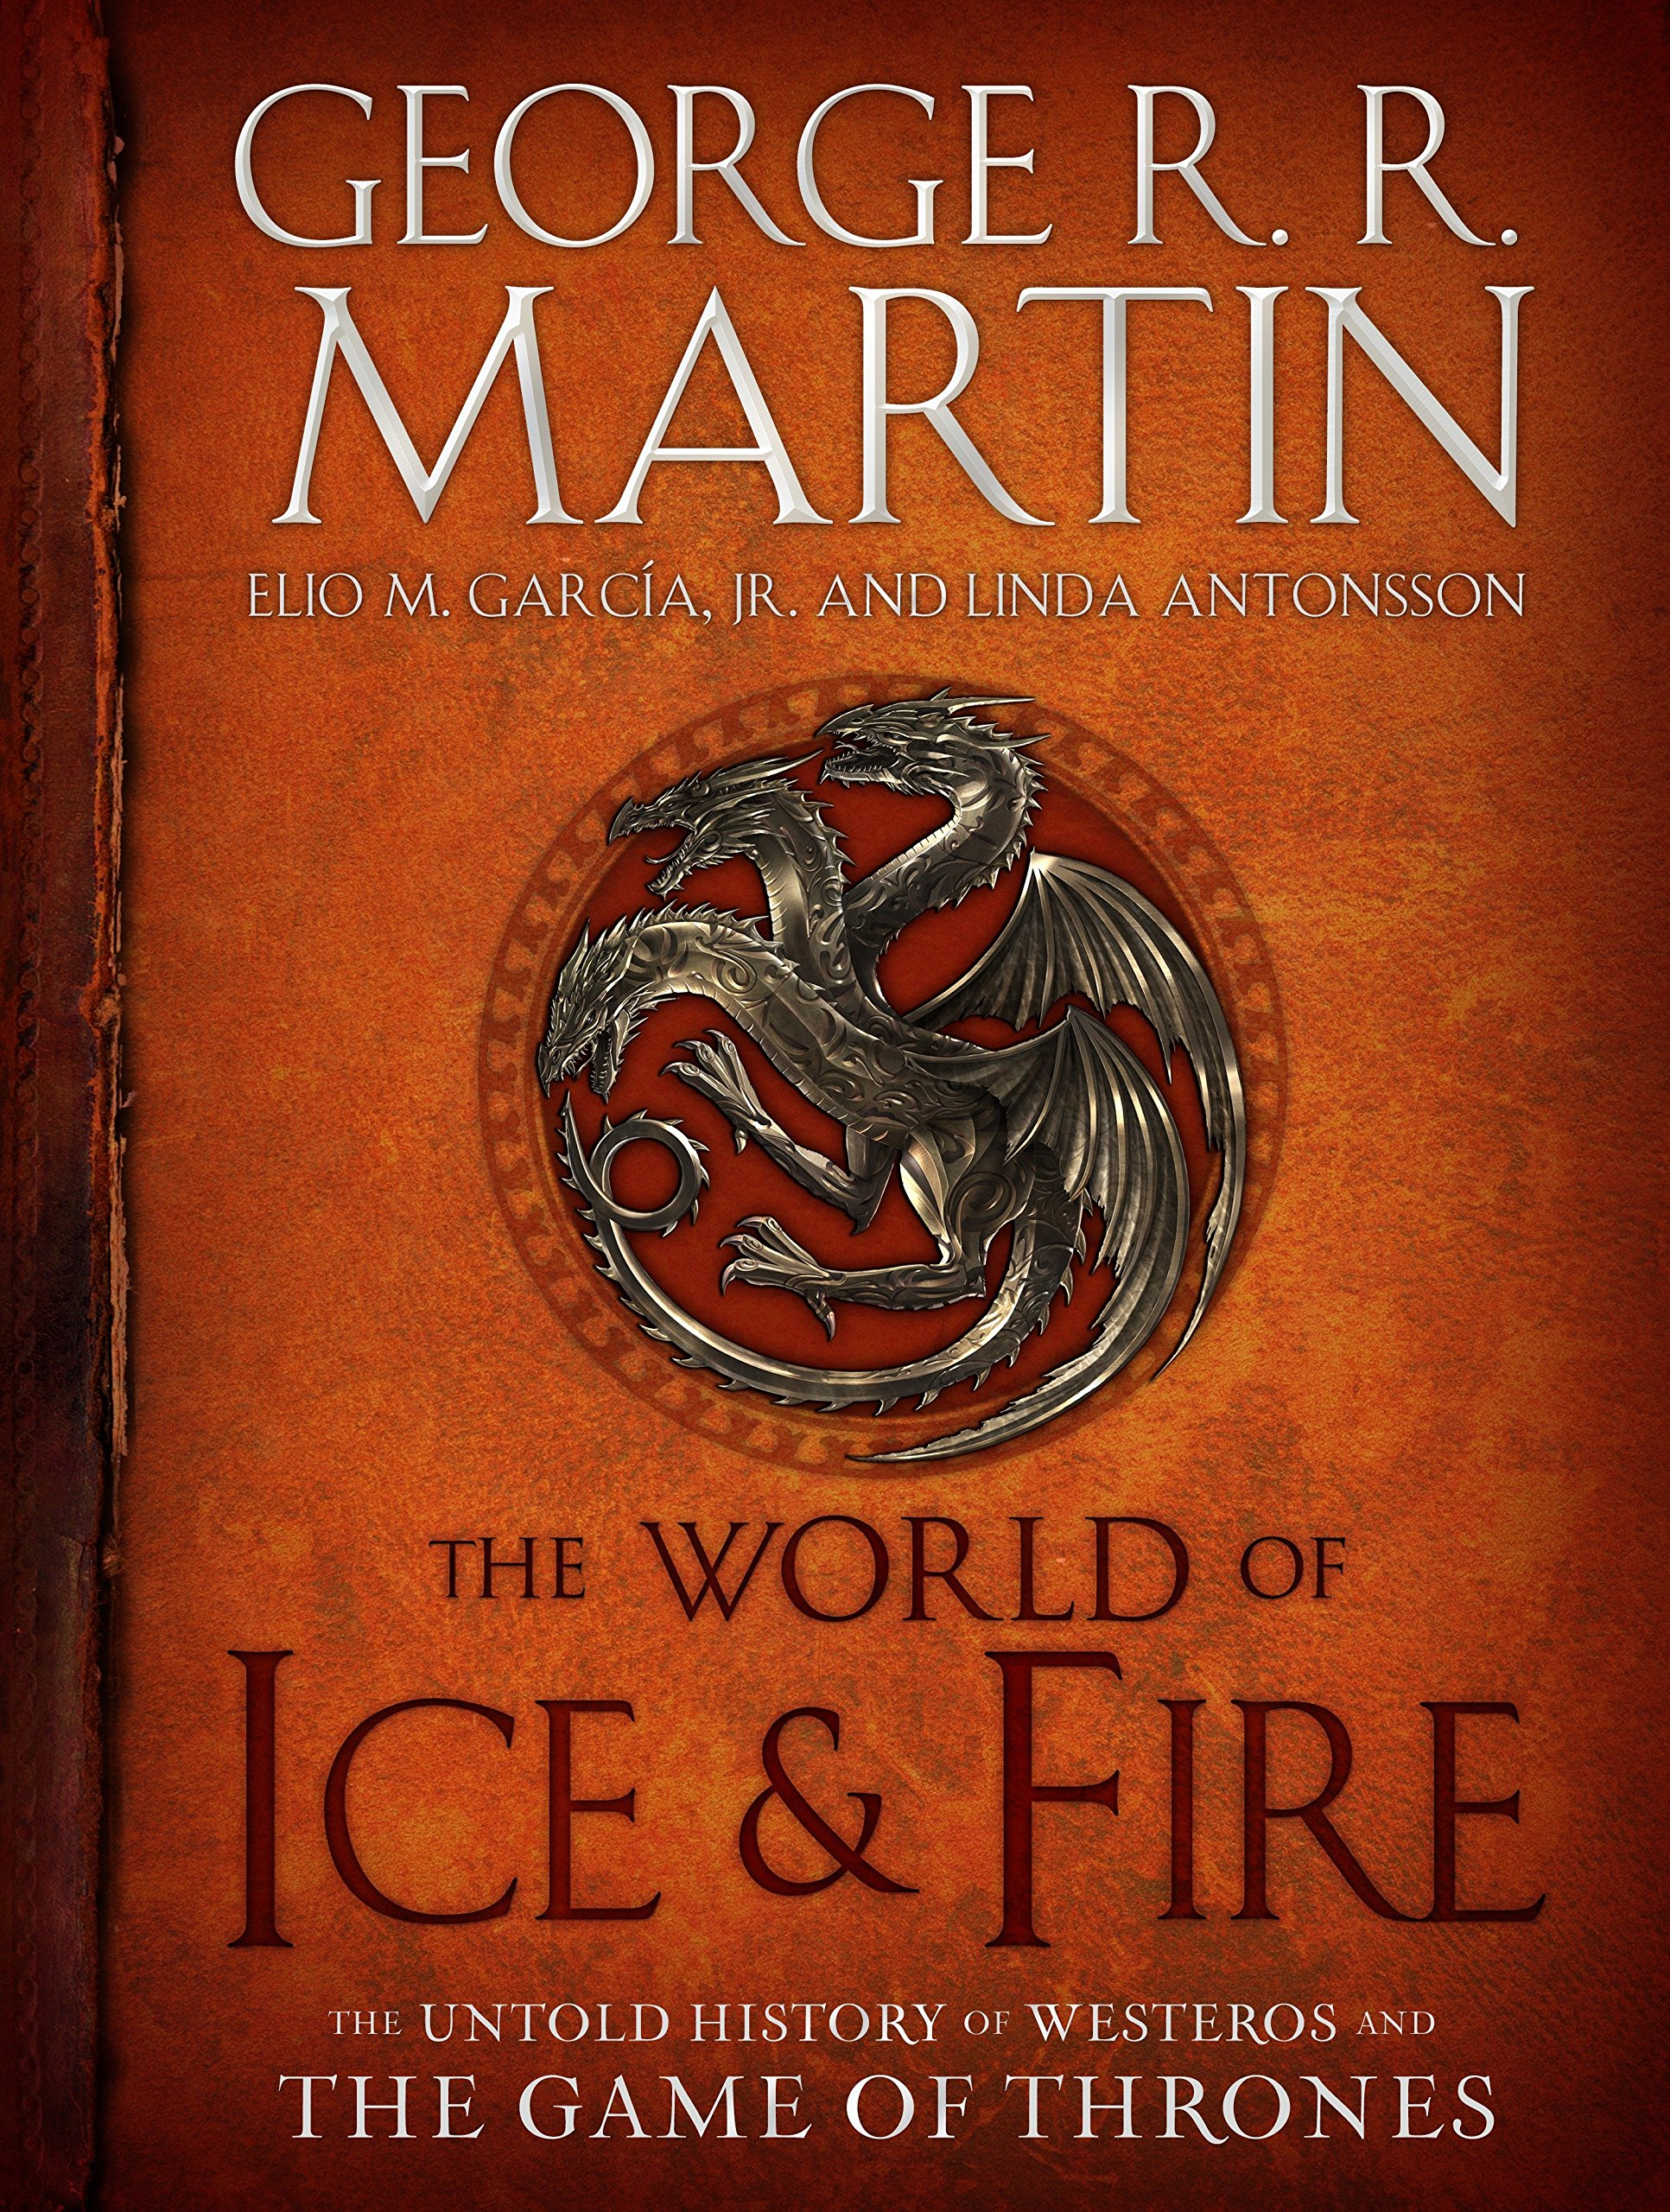 The World Of Ice Fire The Untold History Of Westeros And The Game Of Thrones Martin George R R Garcia Jr Elio M Antonsson Linda 8601411358081 Amazon Com Books